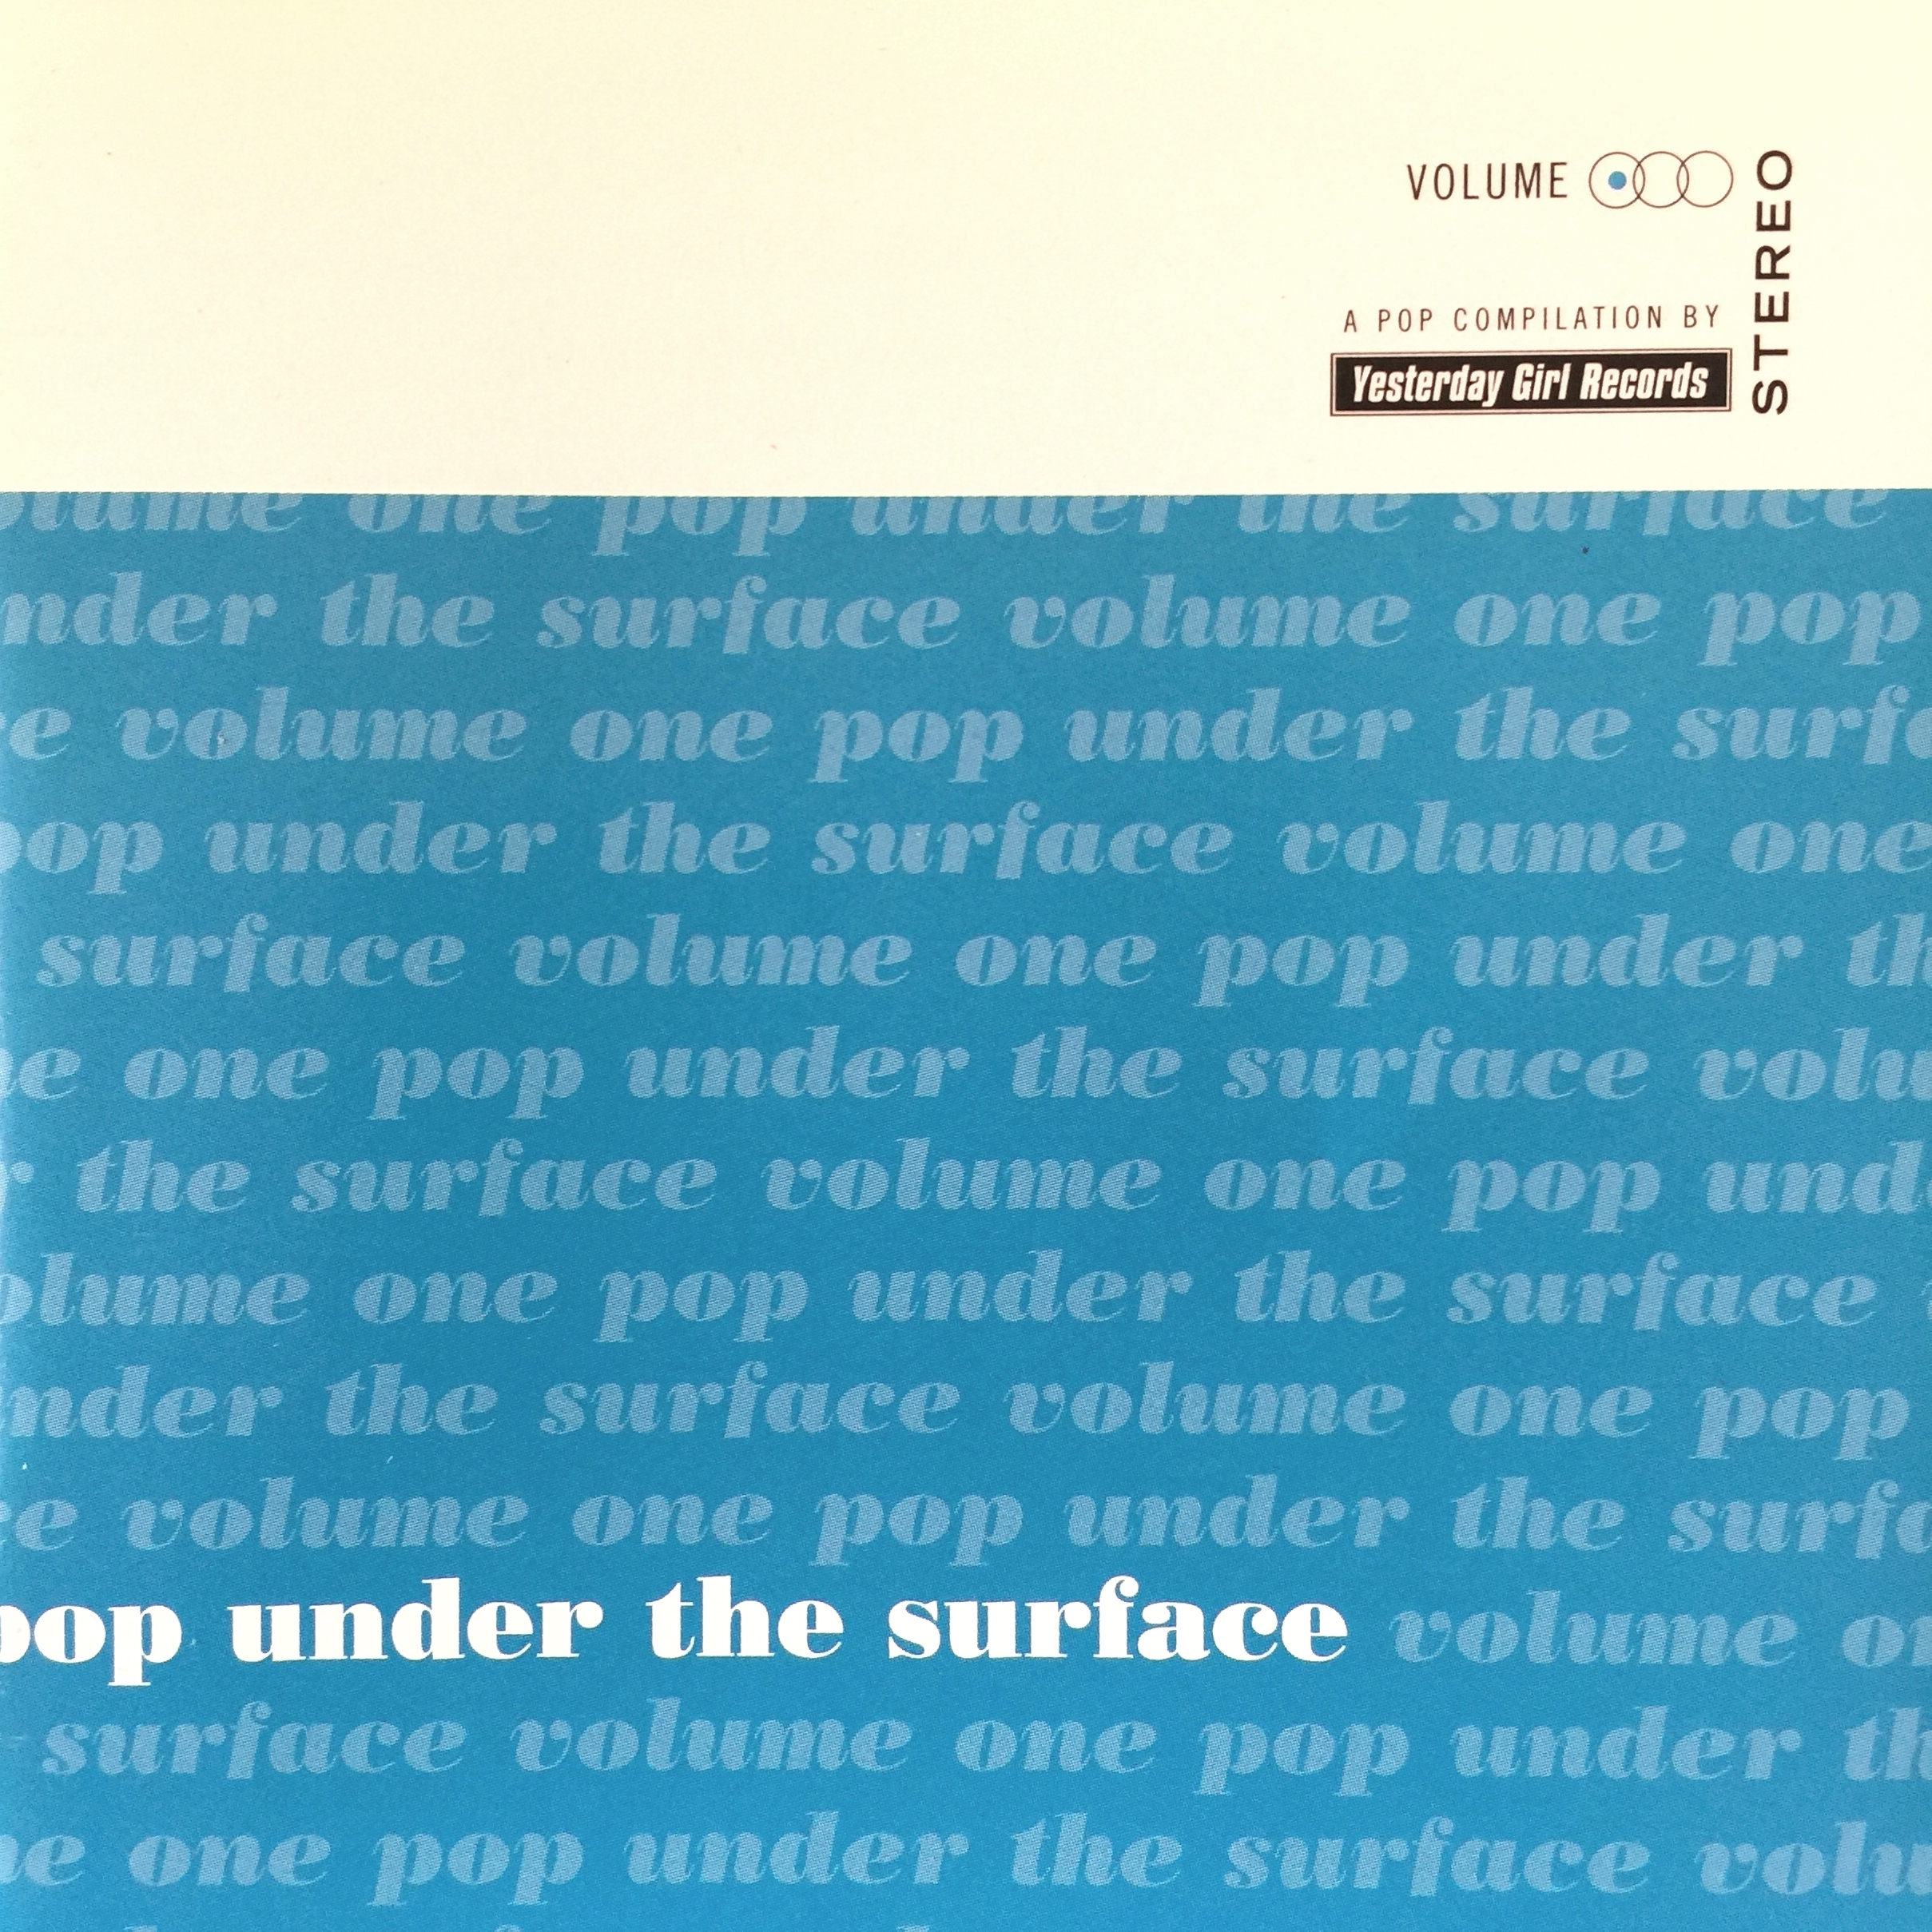 YES001, 1997 | Pop Under The Surface, Volume 1